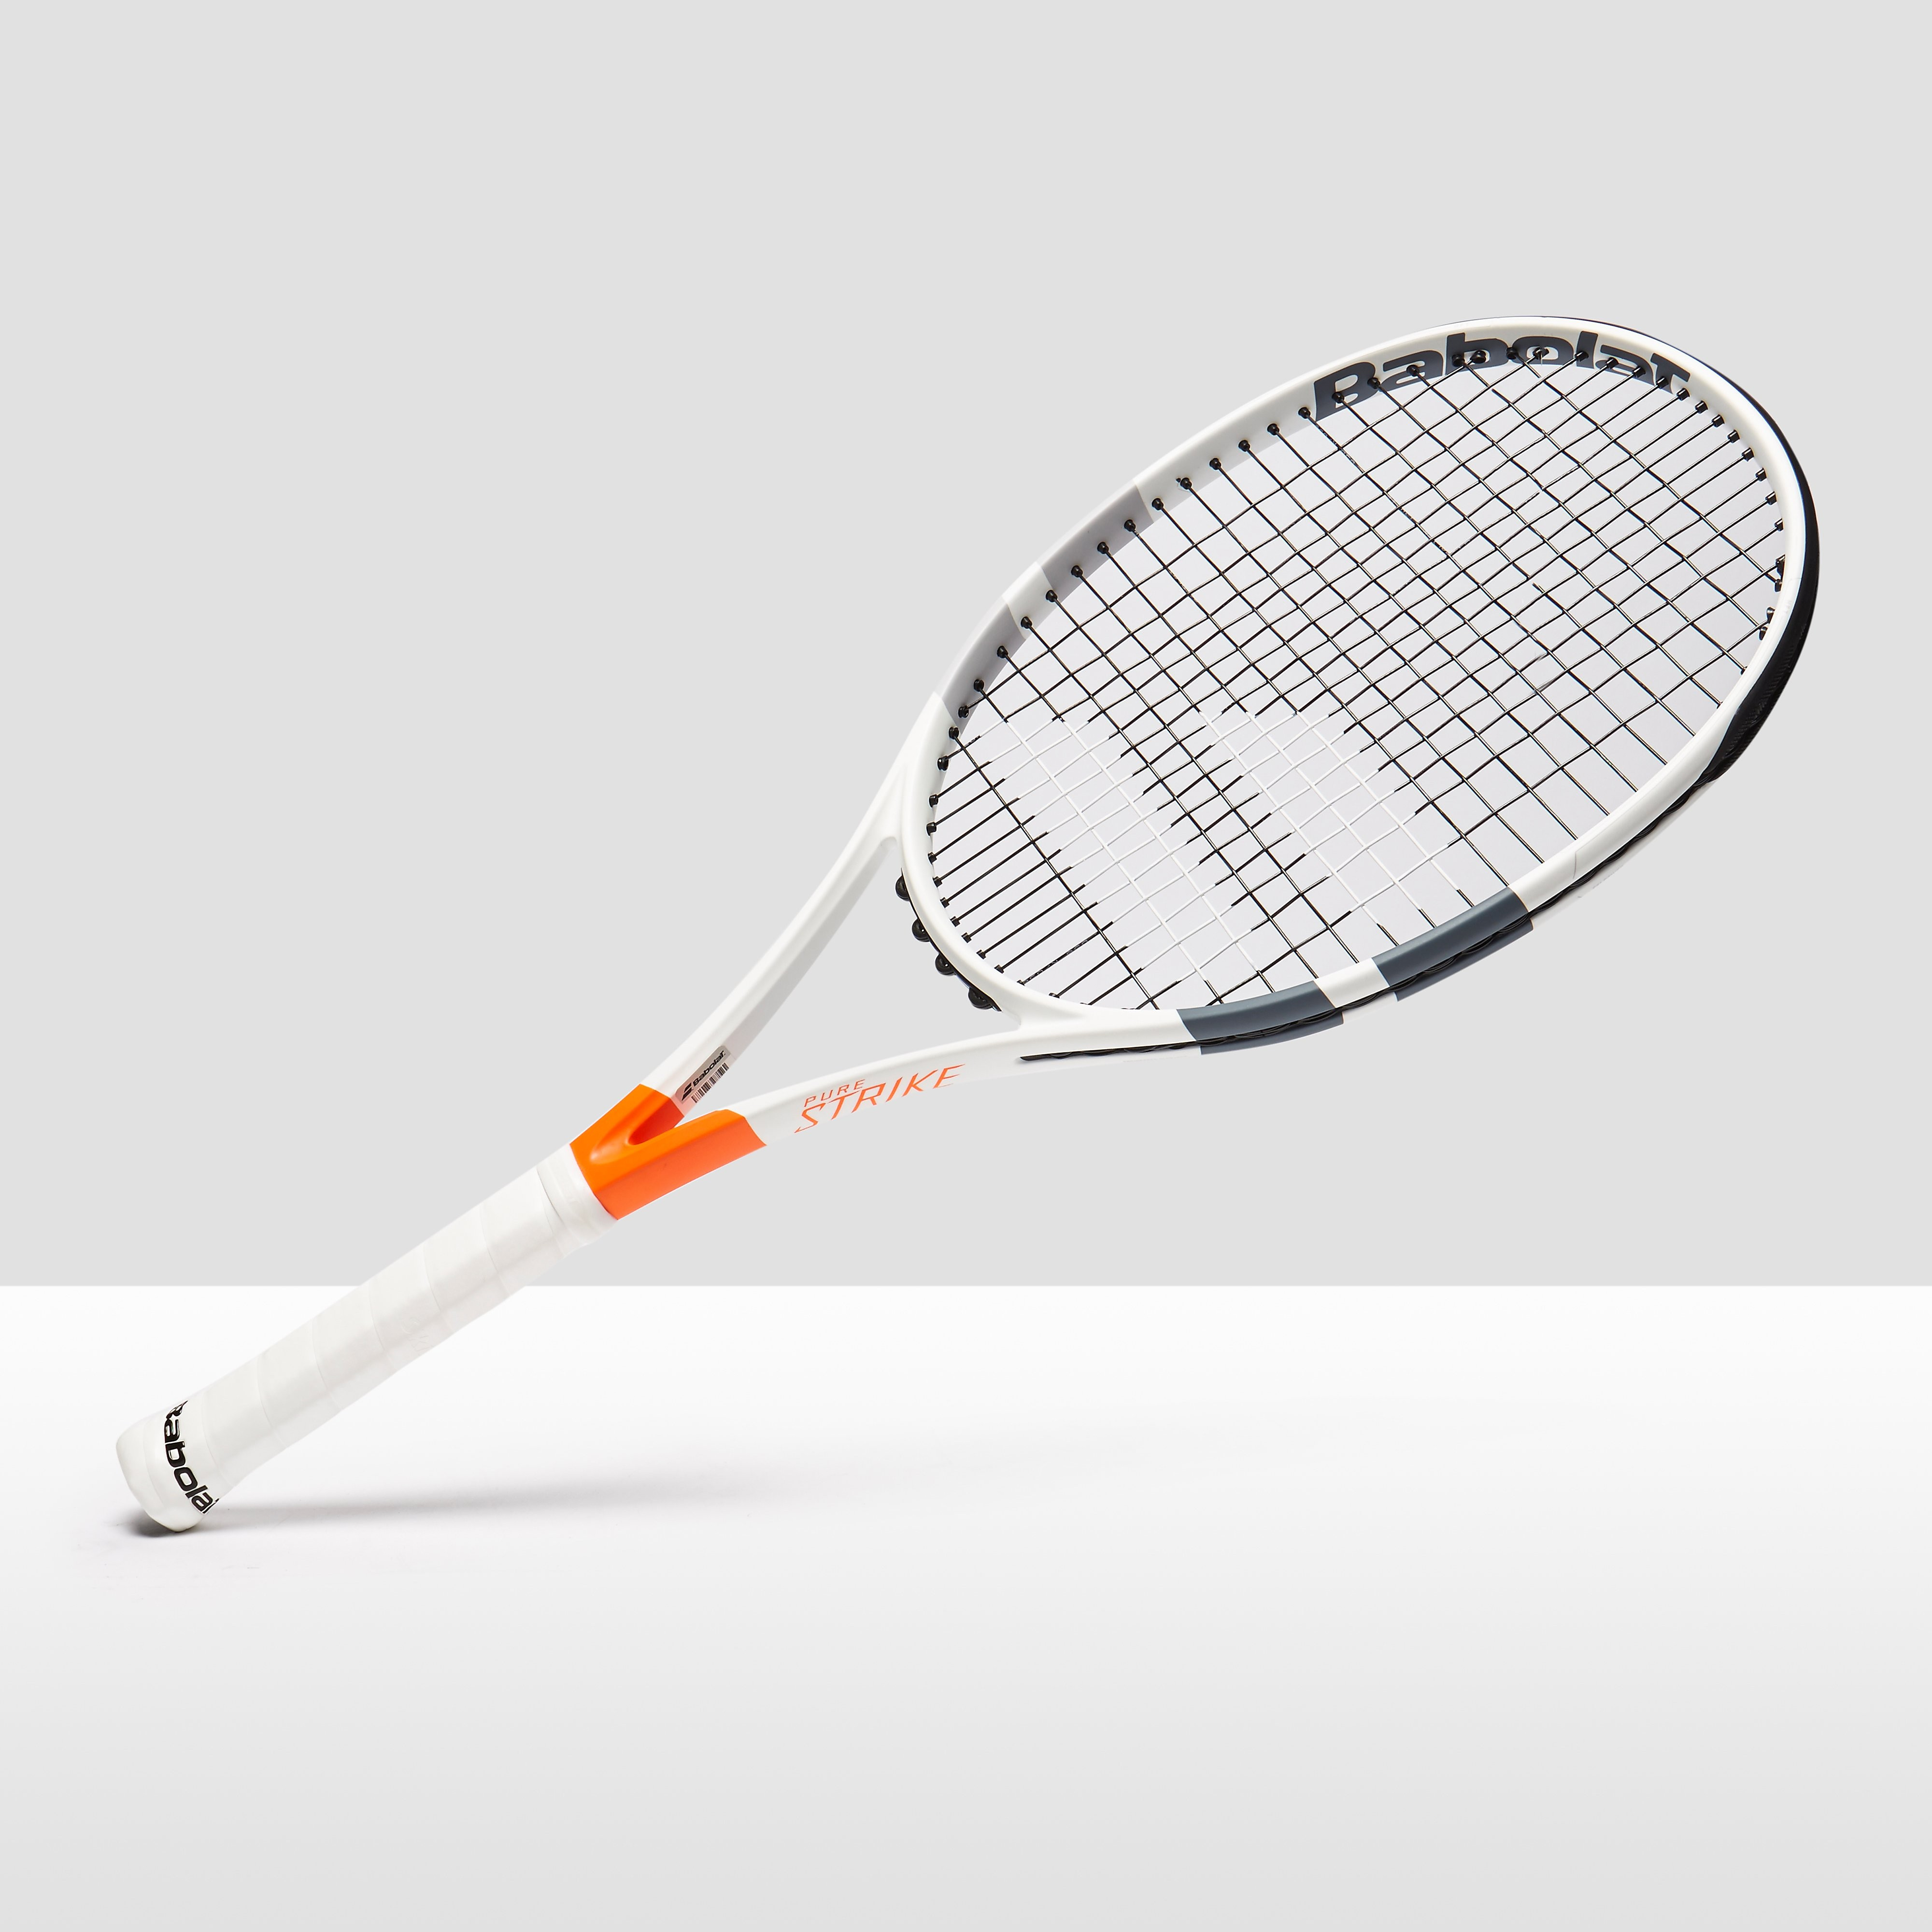 Babolat Pure Strike 16/19 Tennis Racket